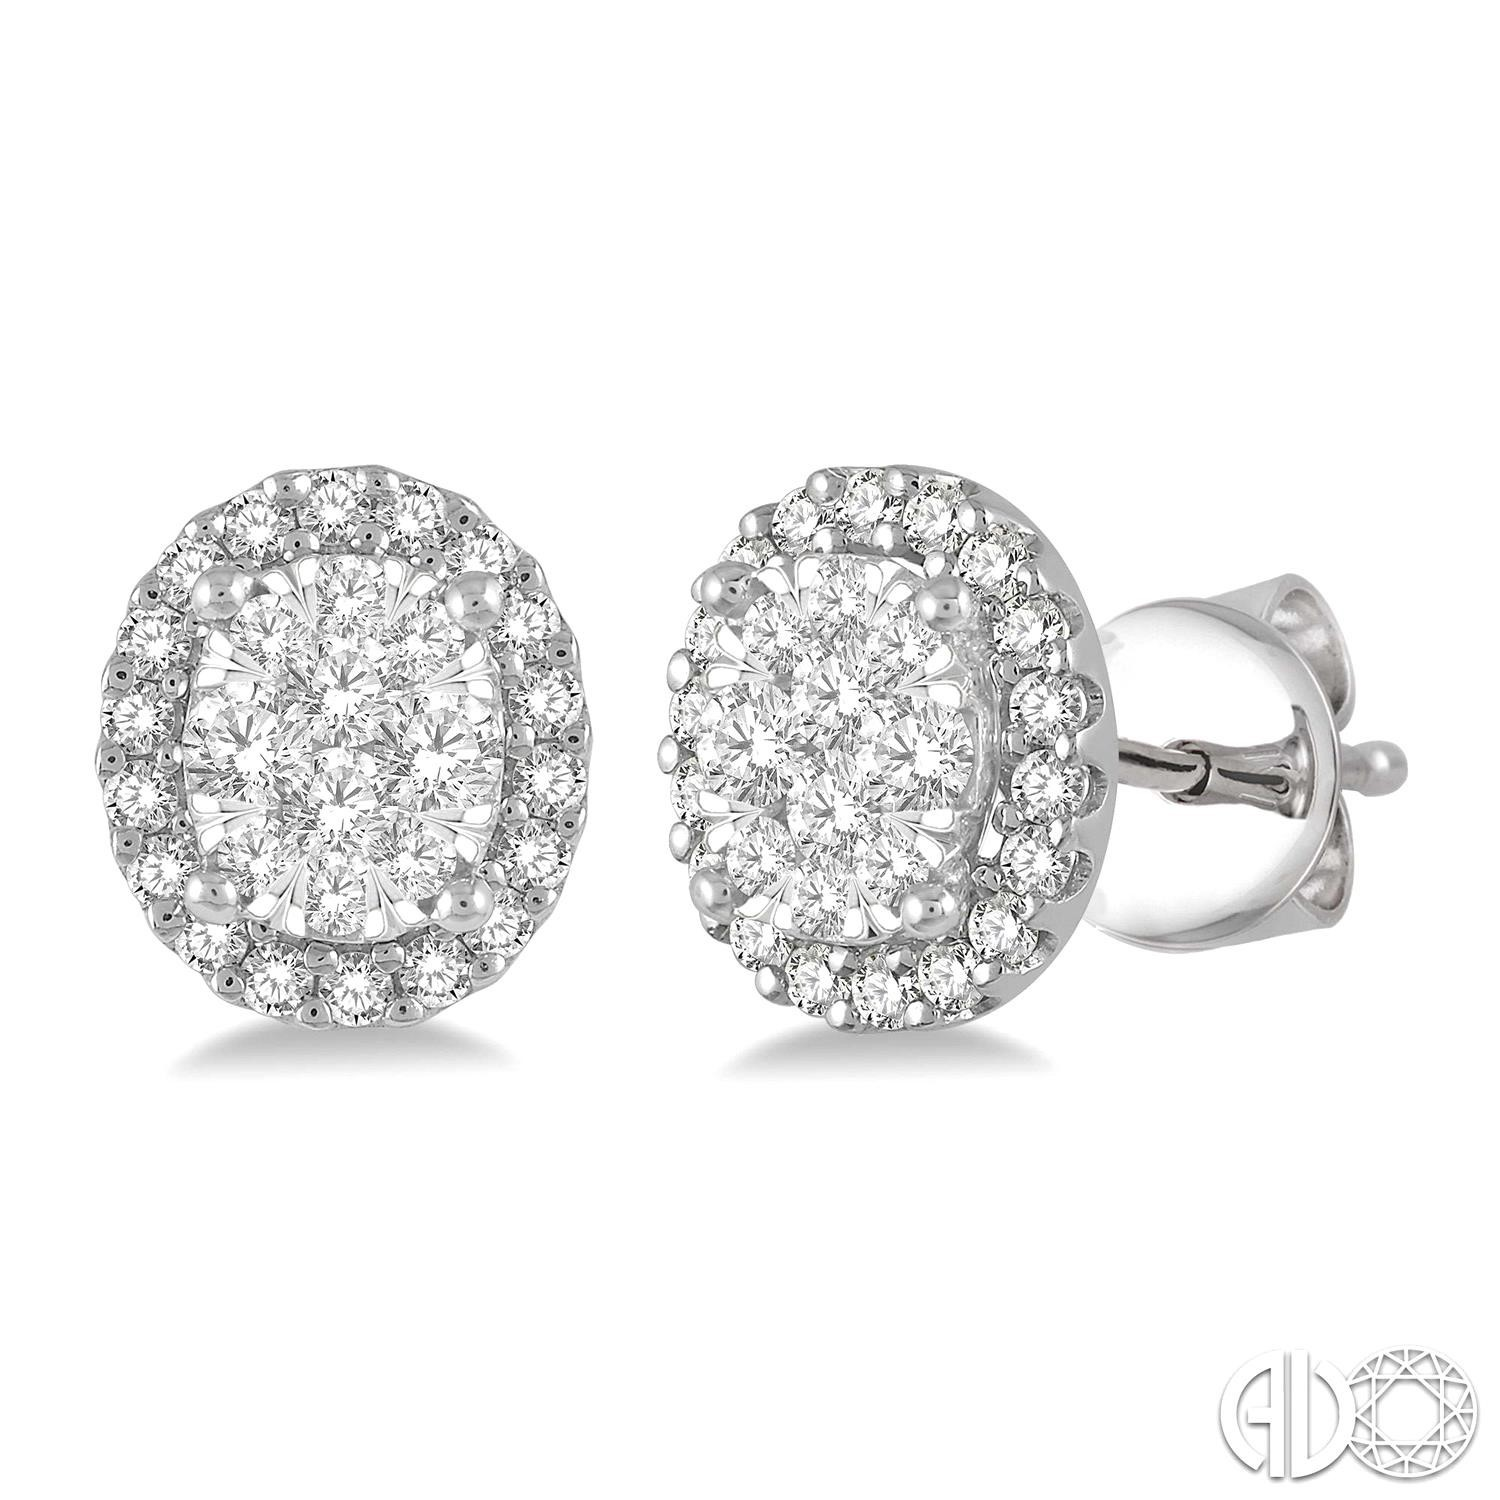 1/3 Ctw Oval Shape Lovebright Round Cut Diamond Stud Earrings in 14K White Gold